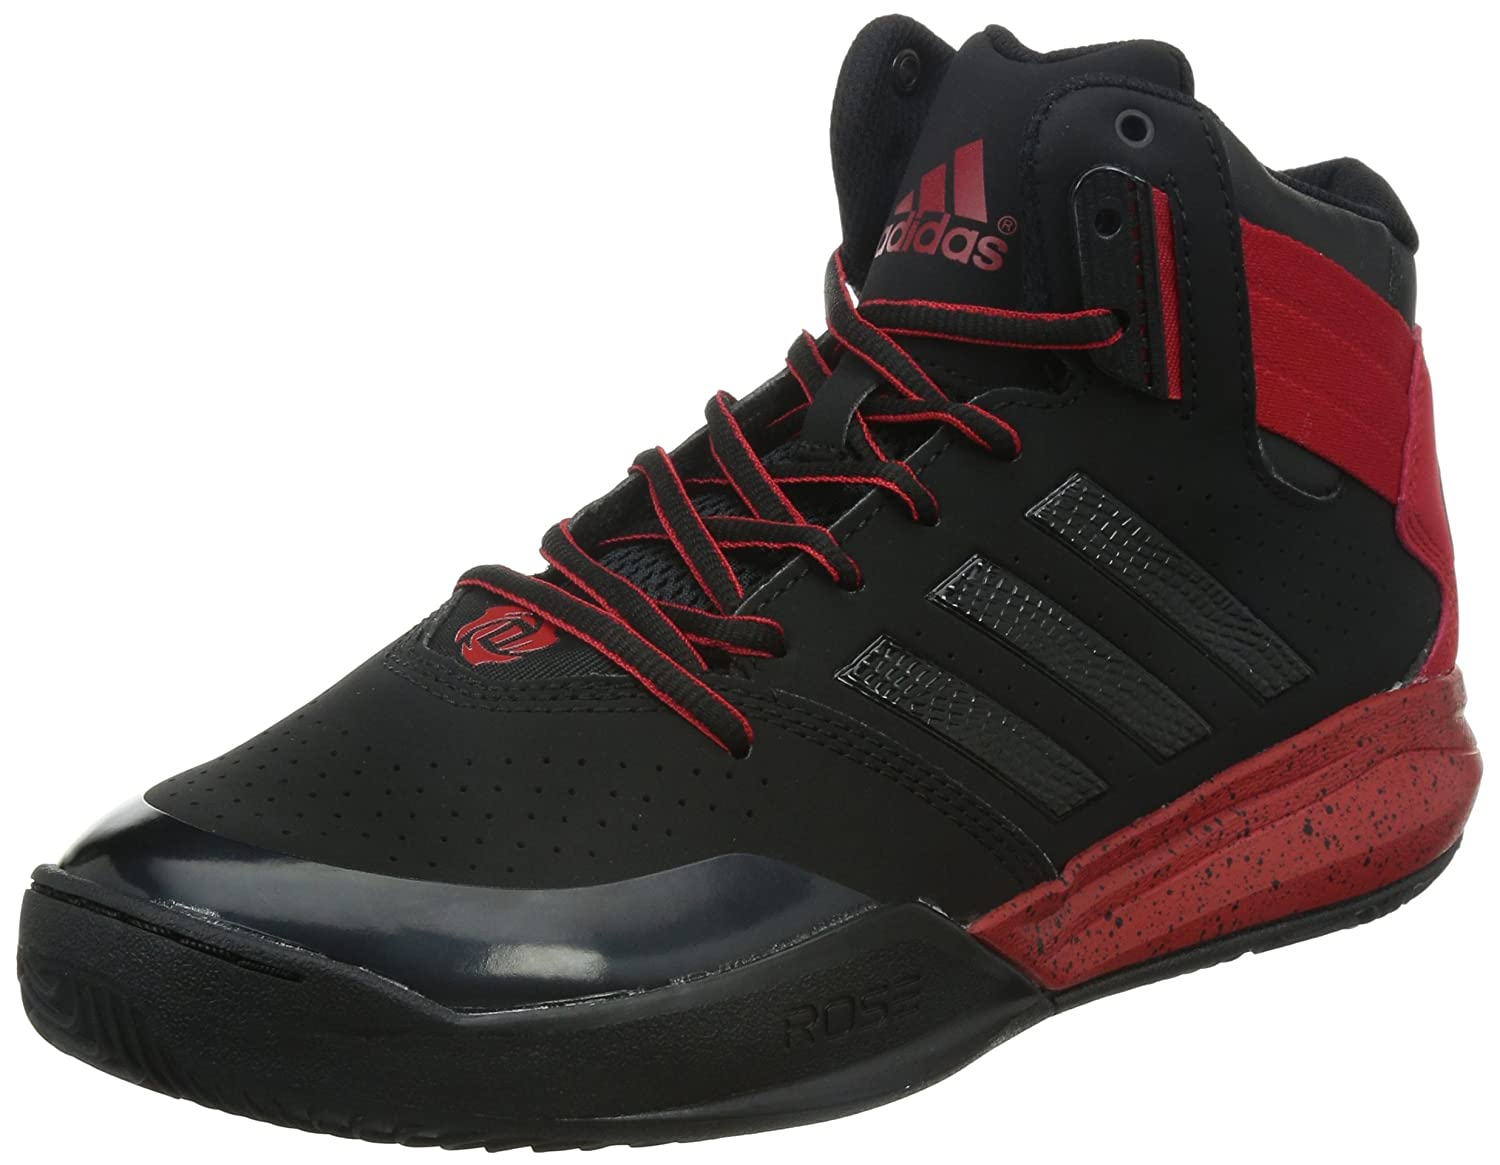 faec137c0ad adidas Performance DERRICK ROSE 773 IV Black Red Men Basketball Shoes  Adiwear  Amazon.co.uk  Sports   Outdoors